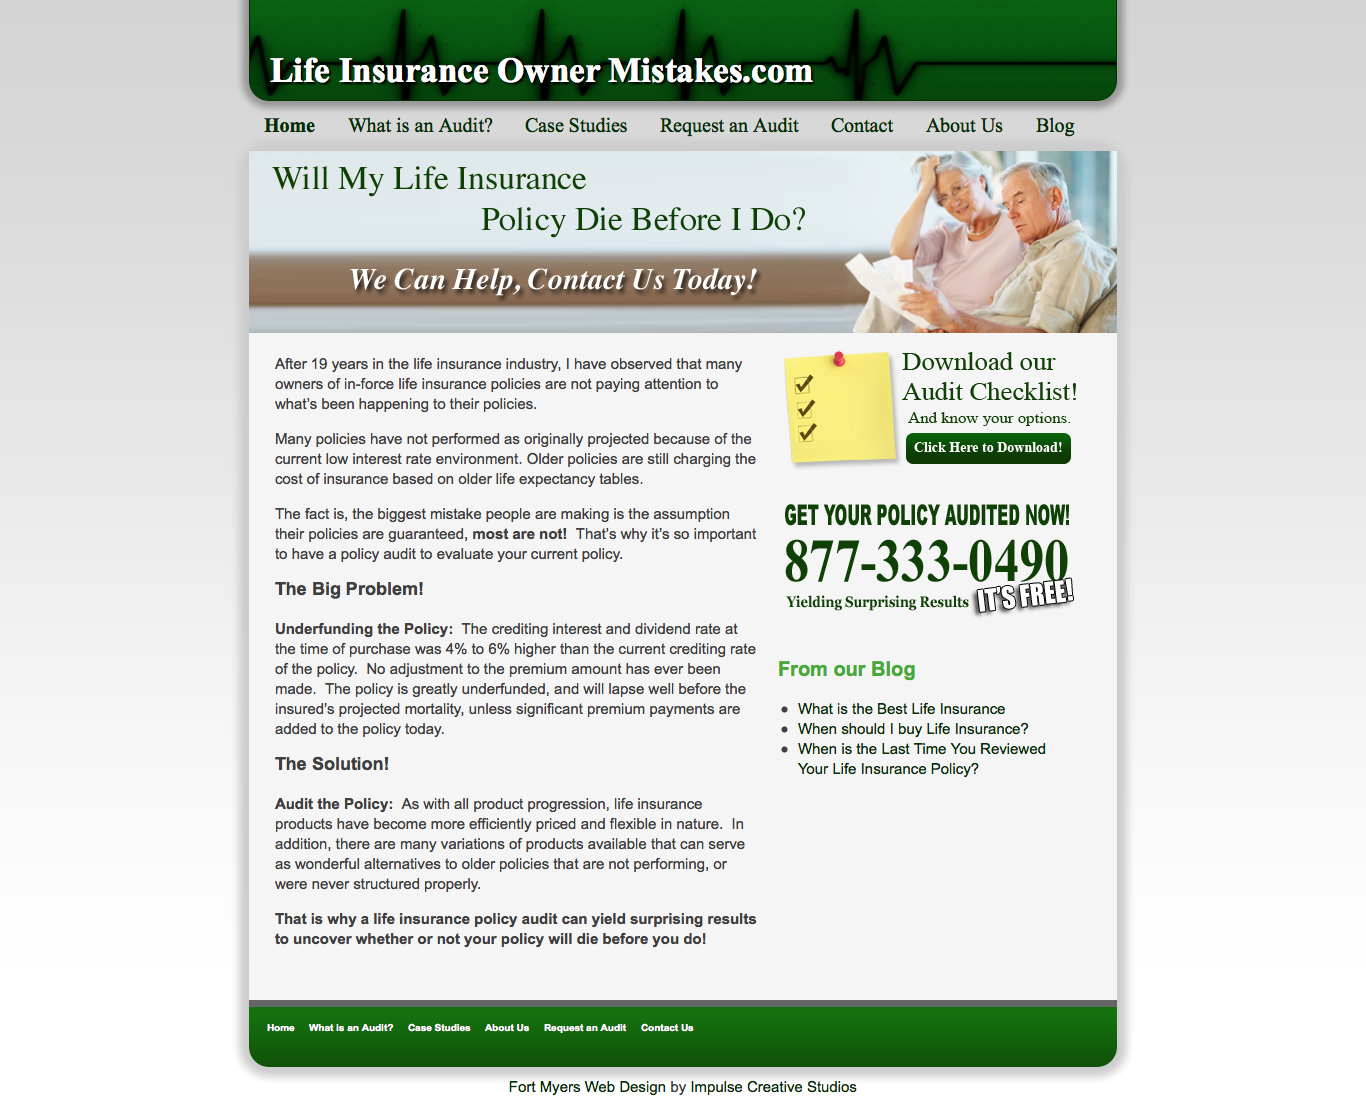 Life Insurance Owner Mistakes Website Design by Impulse